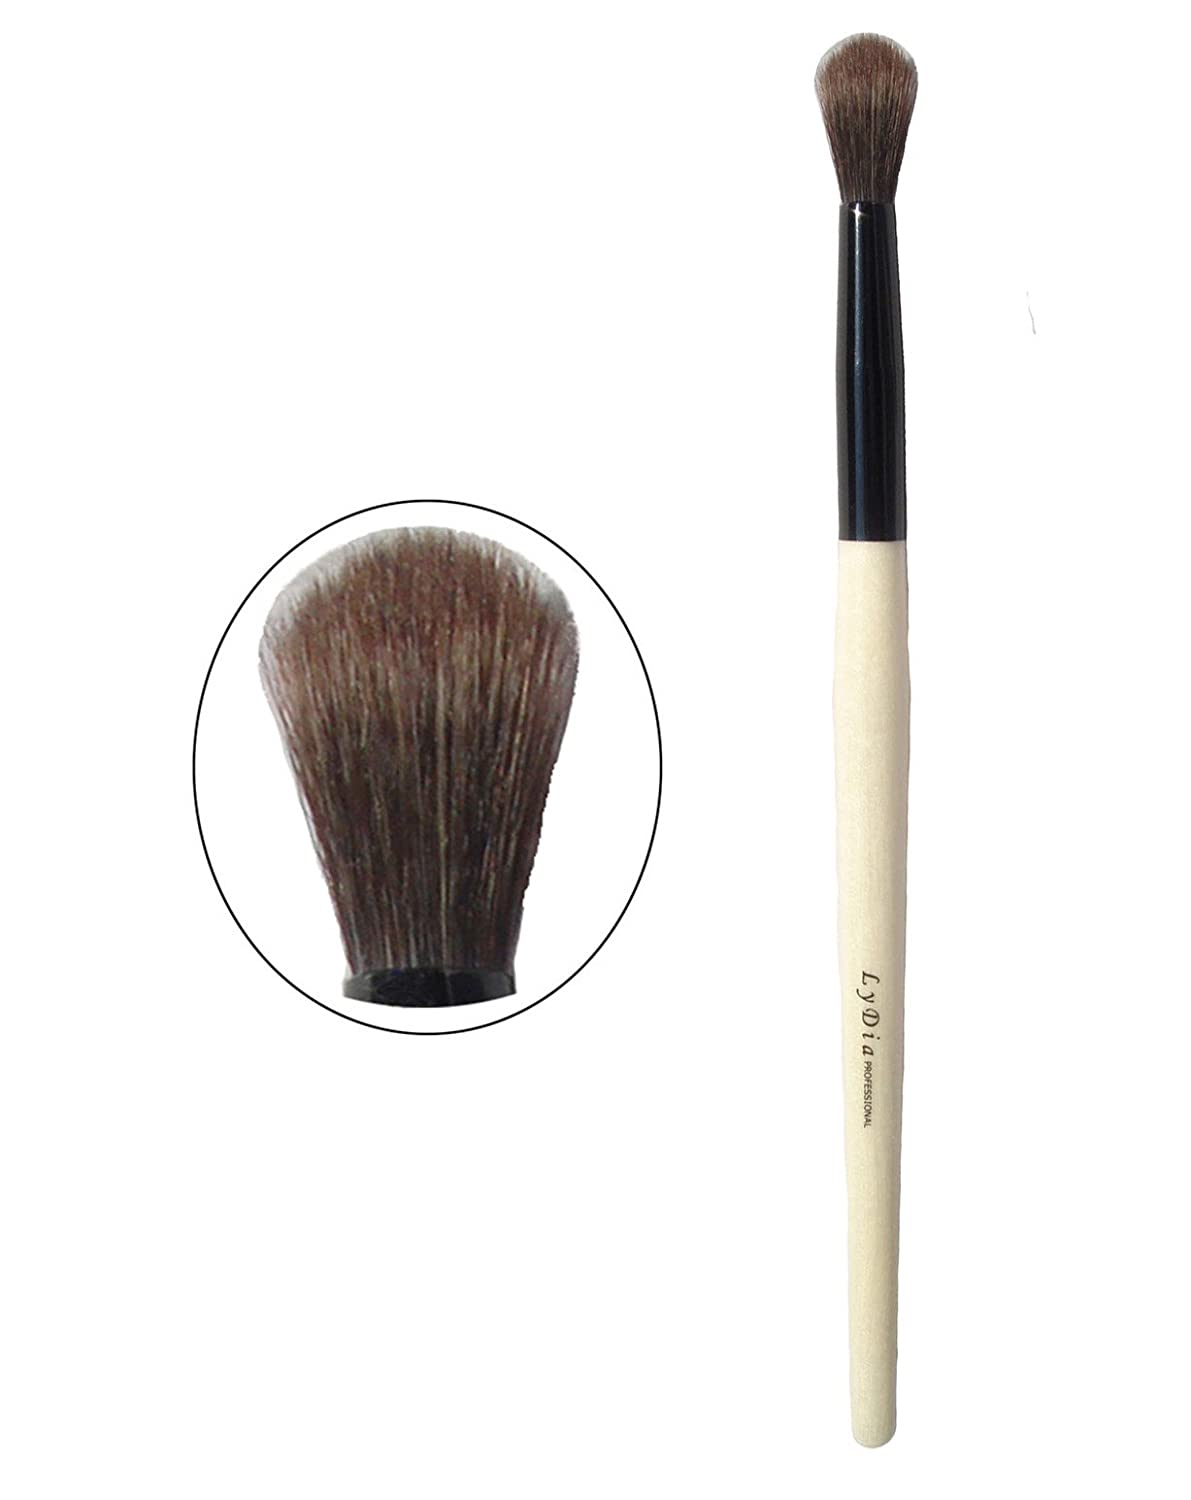 LyDia® Professional Eco-Friendly Natural Wooden Handle Face Powder Angled Blush Contour Foundation Concealer Eye Shadow Brow Define Blending Makeup Brush (Wooden Mascara Eyebrow Brush) LyDia Beauty